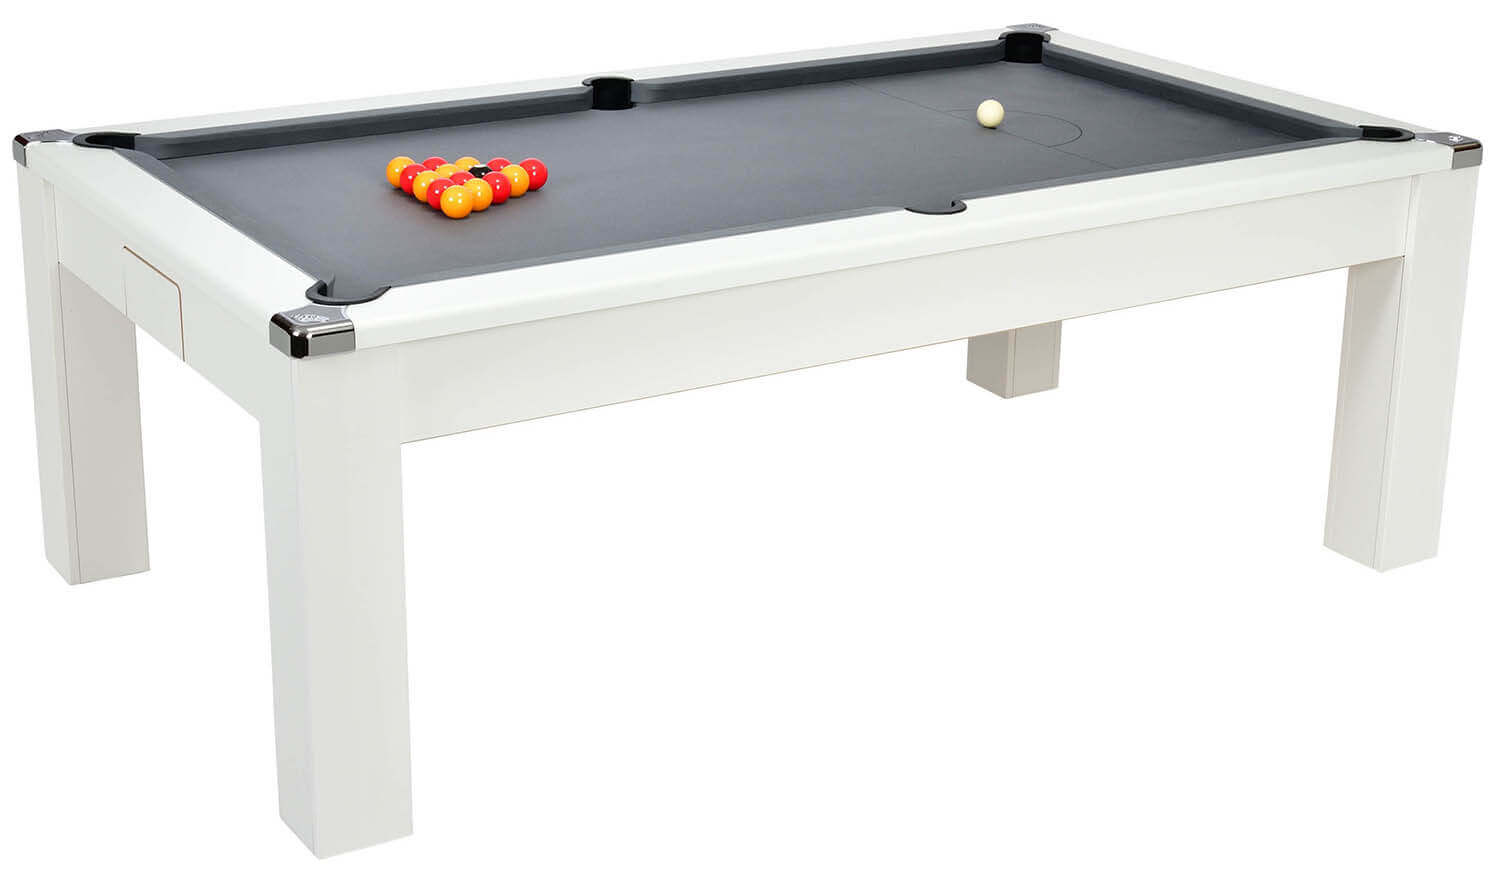 Avant garde 2 0 pool dining table 6 ft 7 ft liberty games Pool dining table